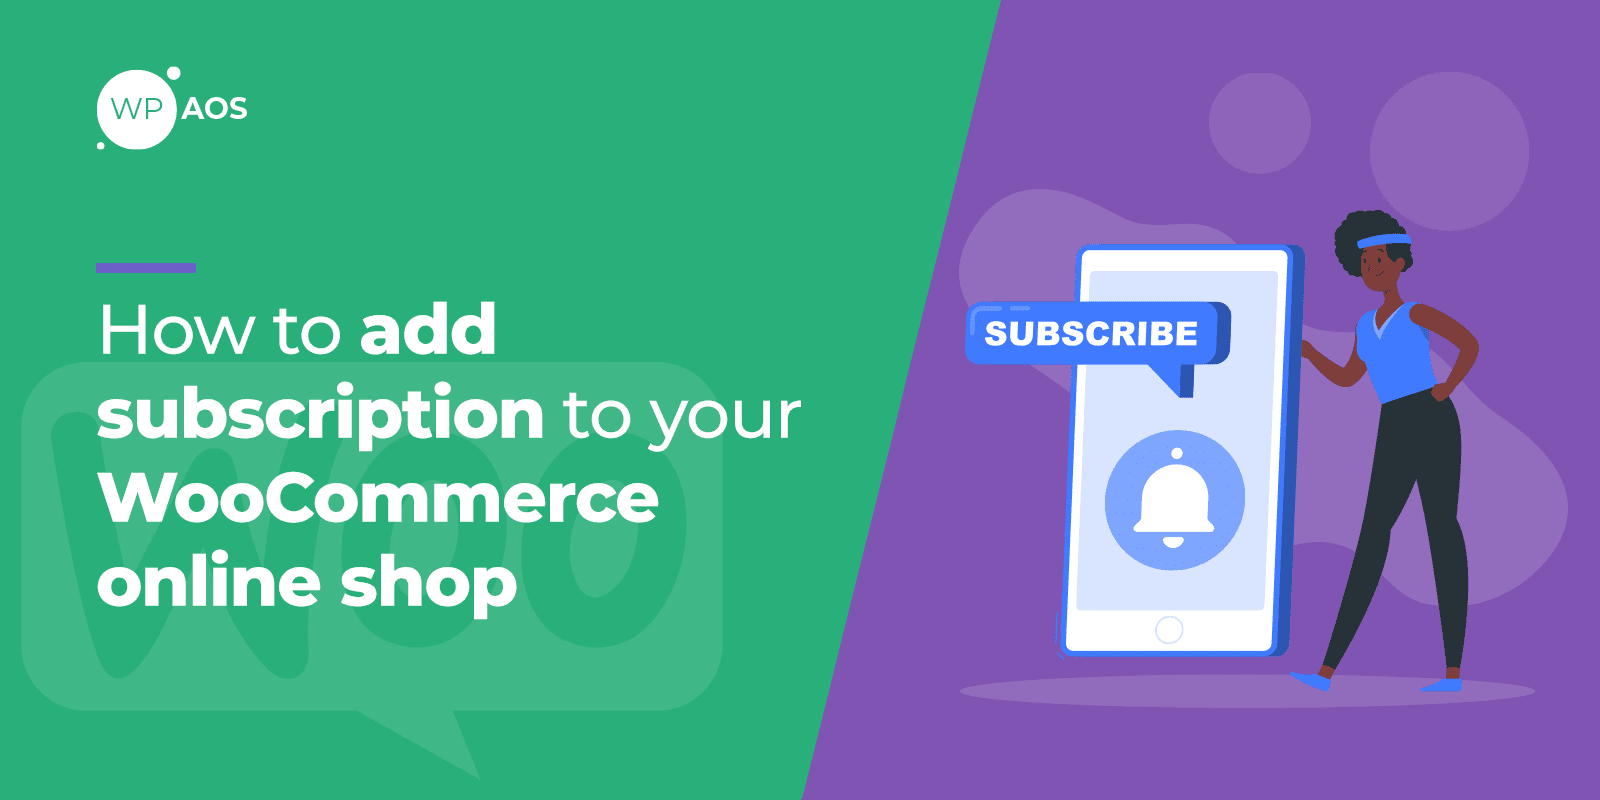 how-to-add-subscription-to-your-woocommerce-online-shop